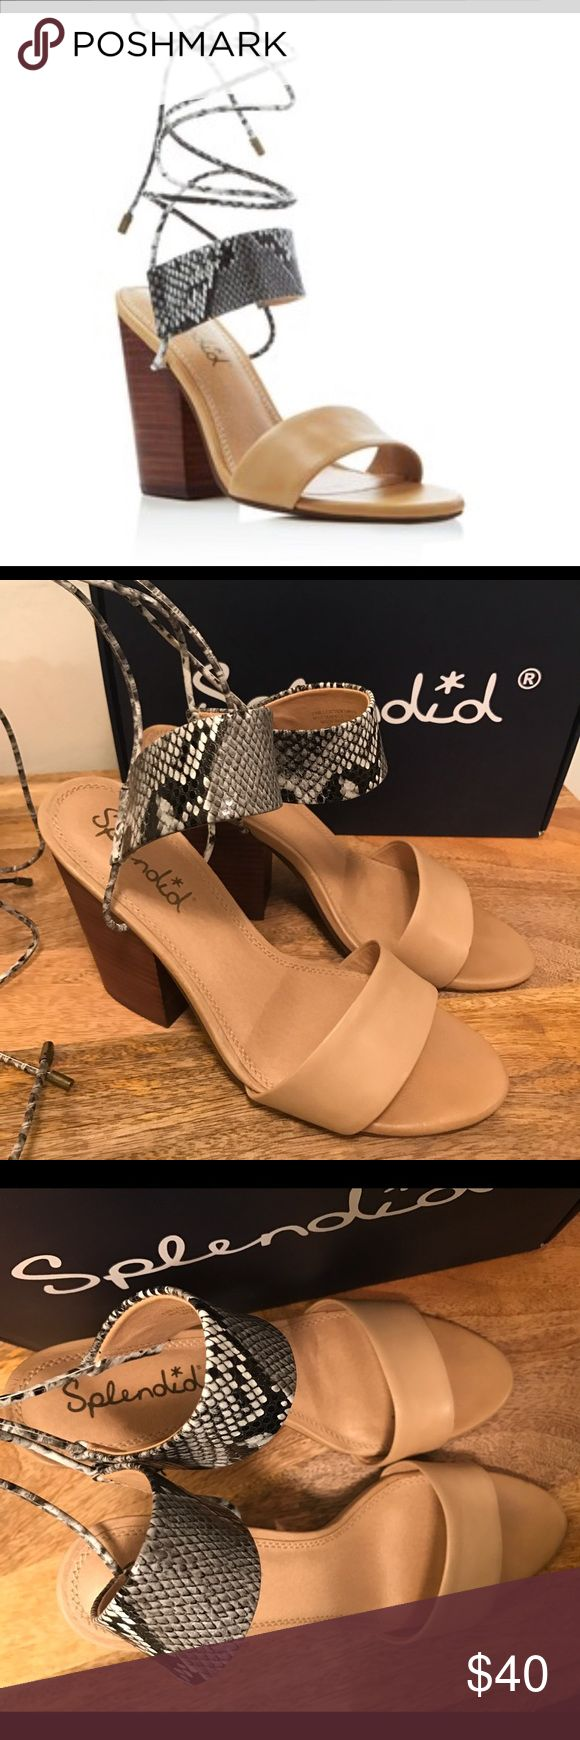 Splendid Ankle Wrap Sandal Splendid Kenya Lace Up High Heel Sandals. Chunky stacked heel with wide snake embossed leather strap, make for a fun summer Sandal! These are in great condition, barely worn. Splendid Shoes Sandals